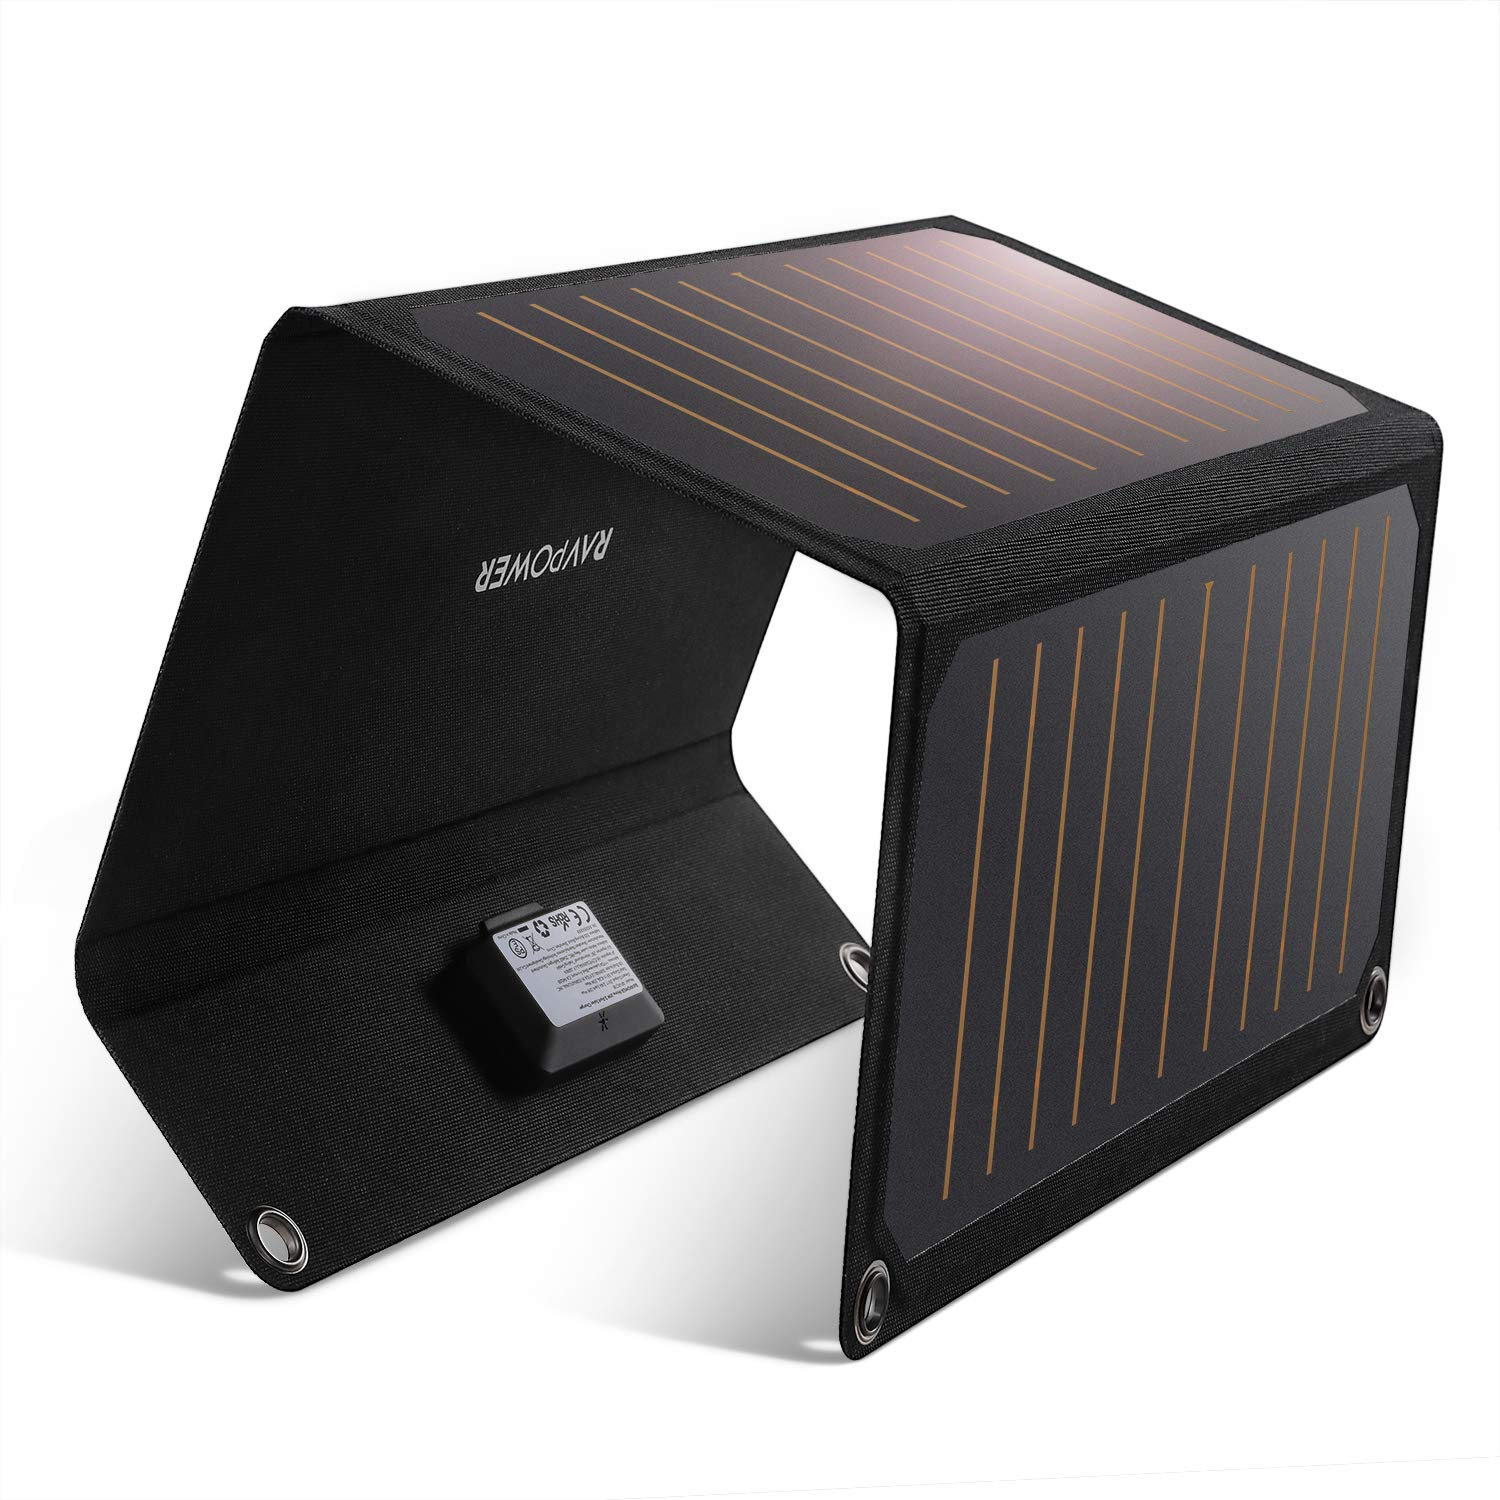 RAVPower Solar Charger 21W Solar Panel with Dual USB Port Waterproof Foldable Camping Travel Charger Compatible iPhone Xs XS Max XR X 8 7 Plus, iPad, Galaxy S9 S8 Edge Plus, Note, LG, Nexus and More by RAVPower